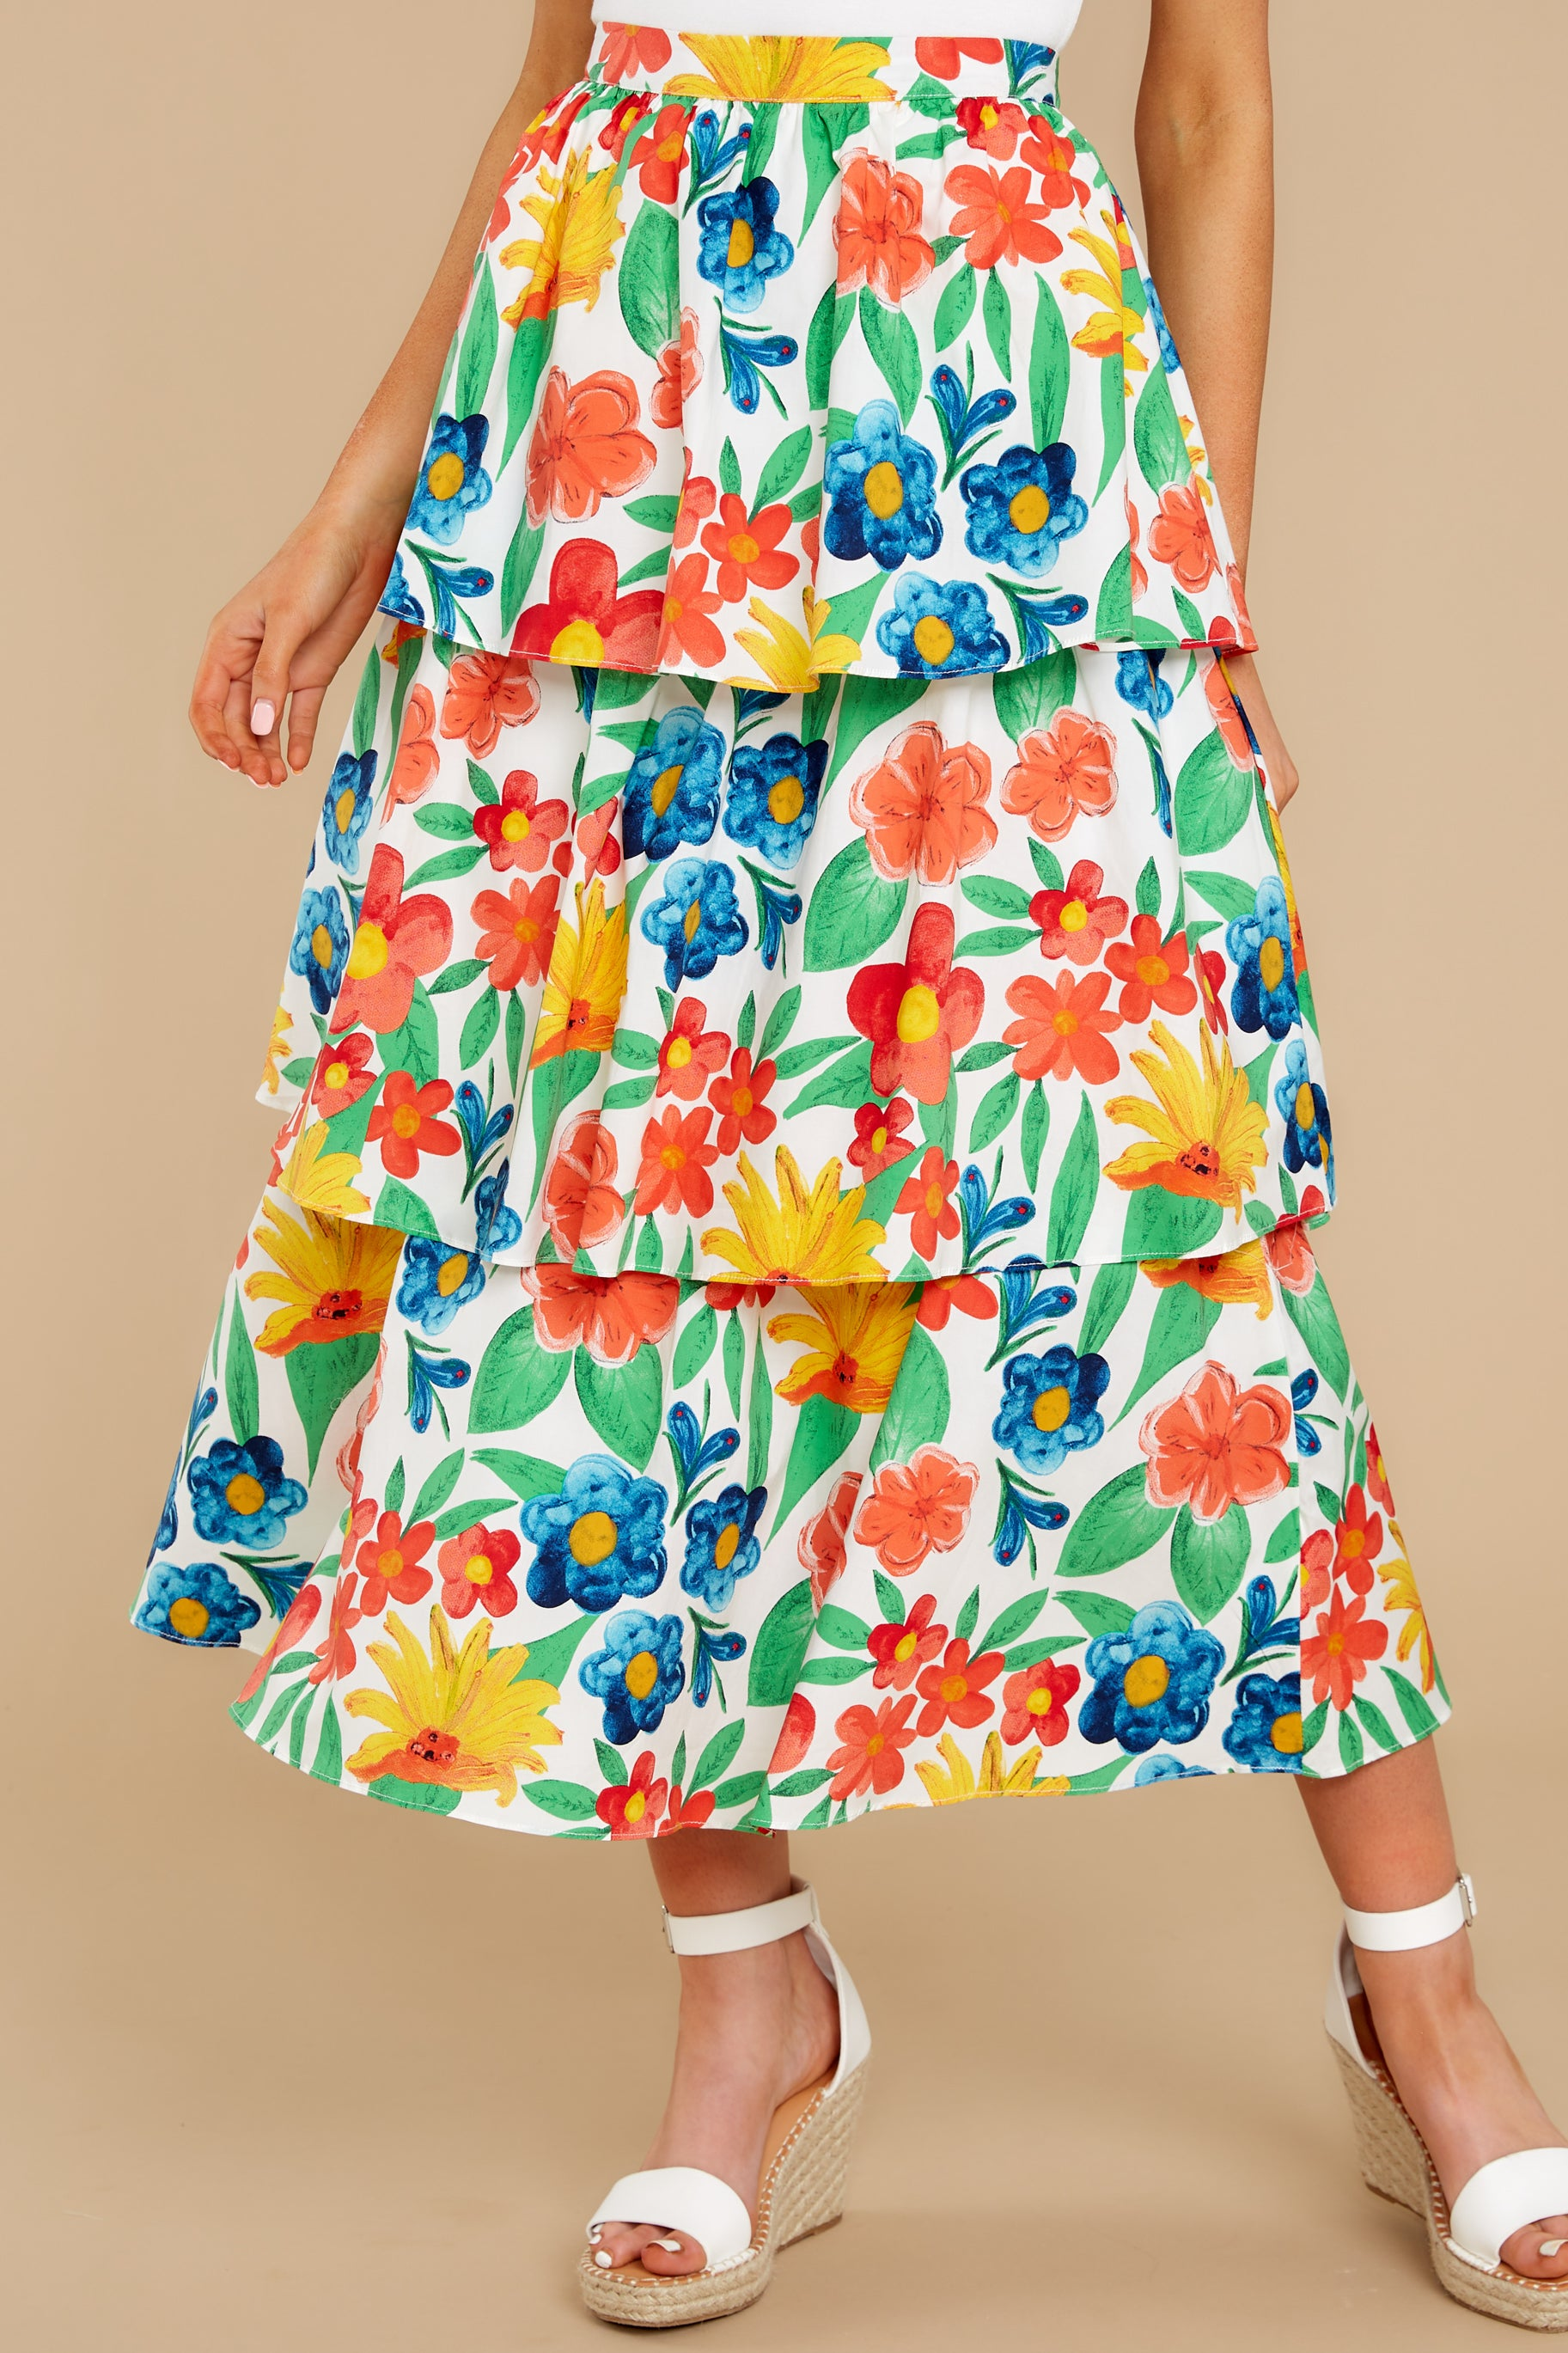 2 On Your Bright Side White Floral Print Midi Skirt at reddress.com